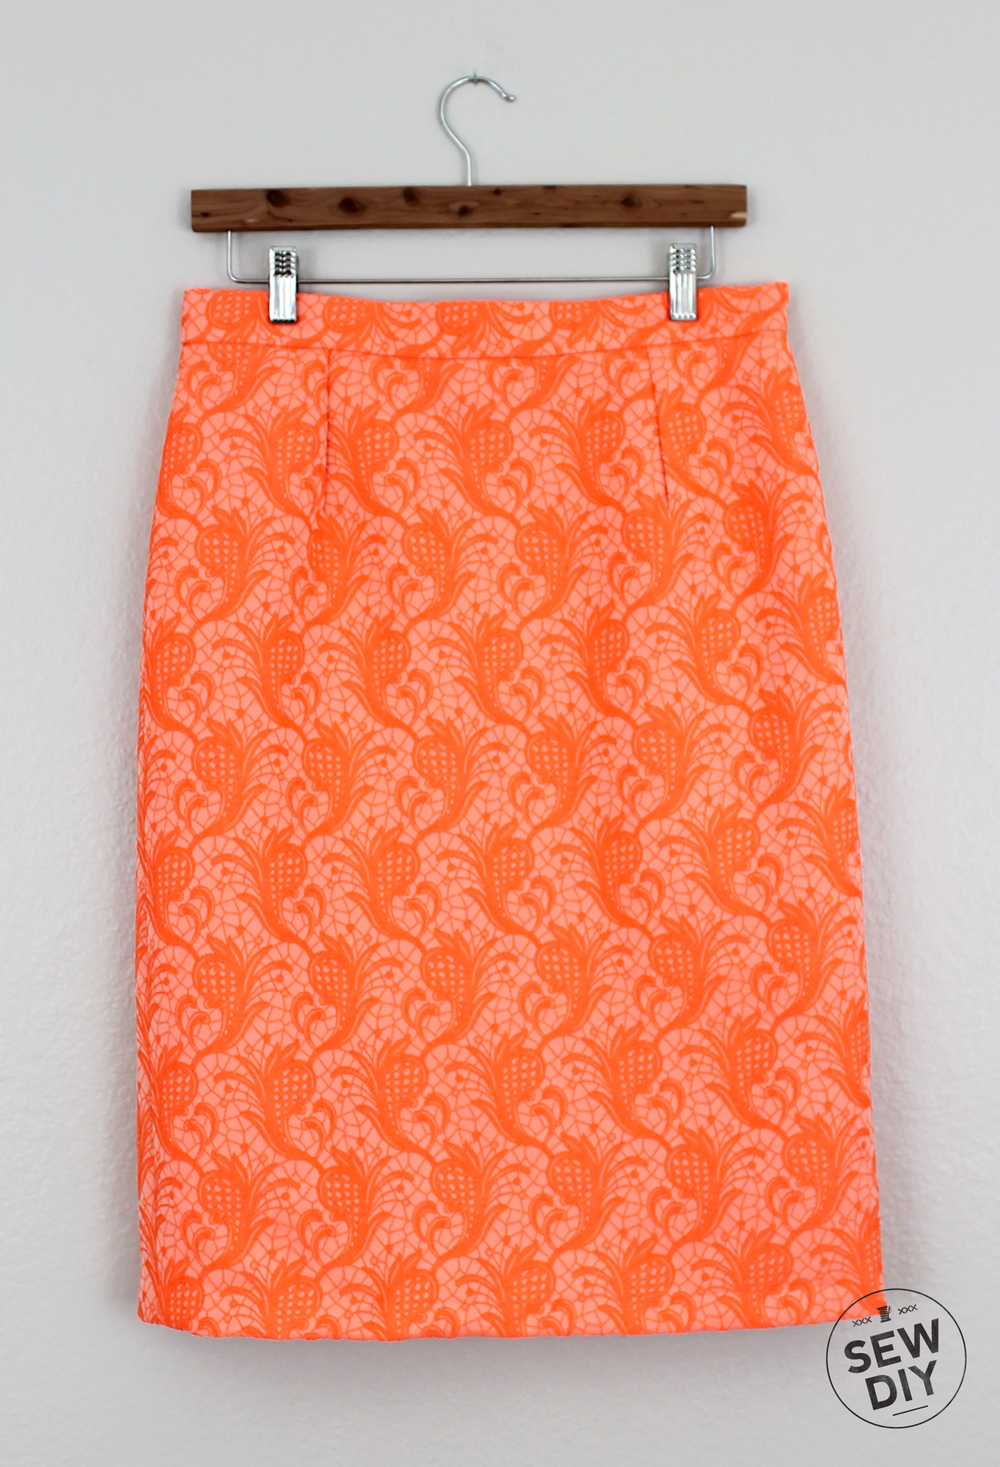 Sew DIY Orange Brocade Skirt Front